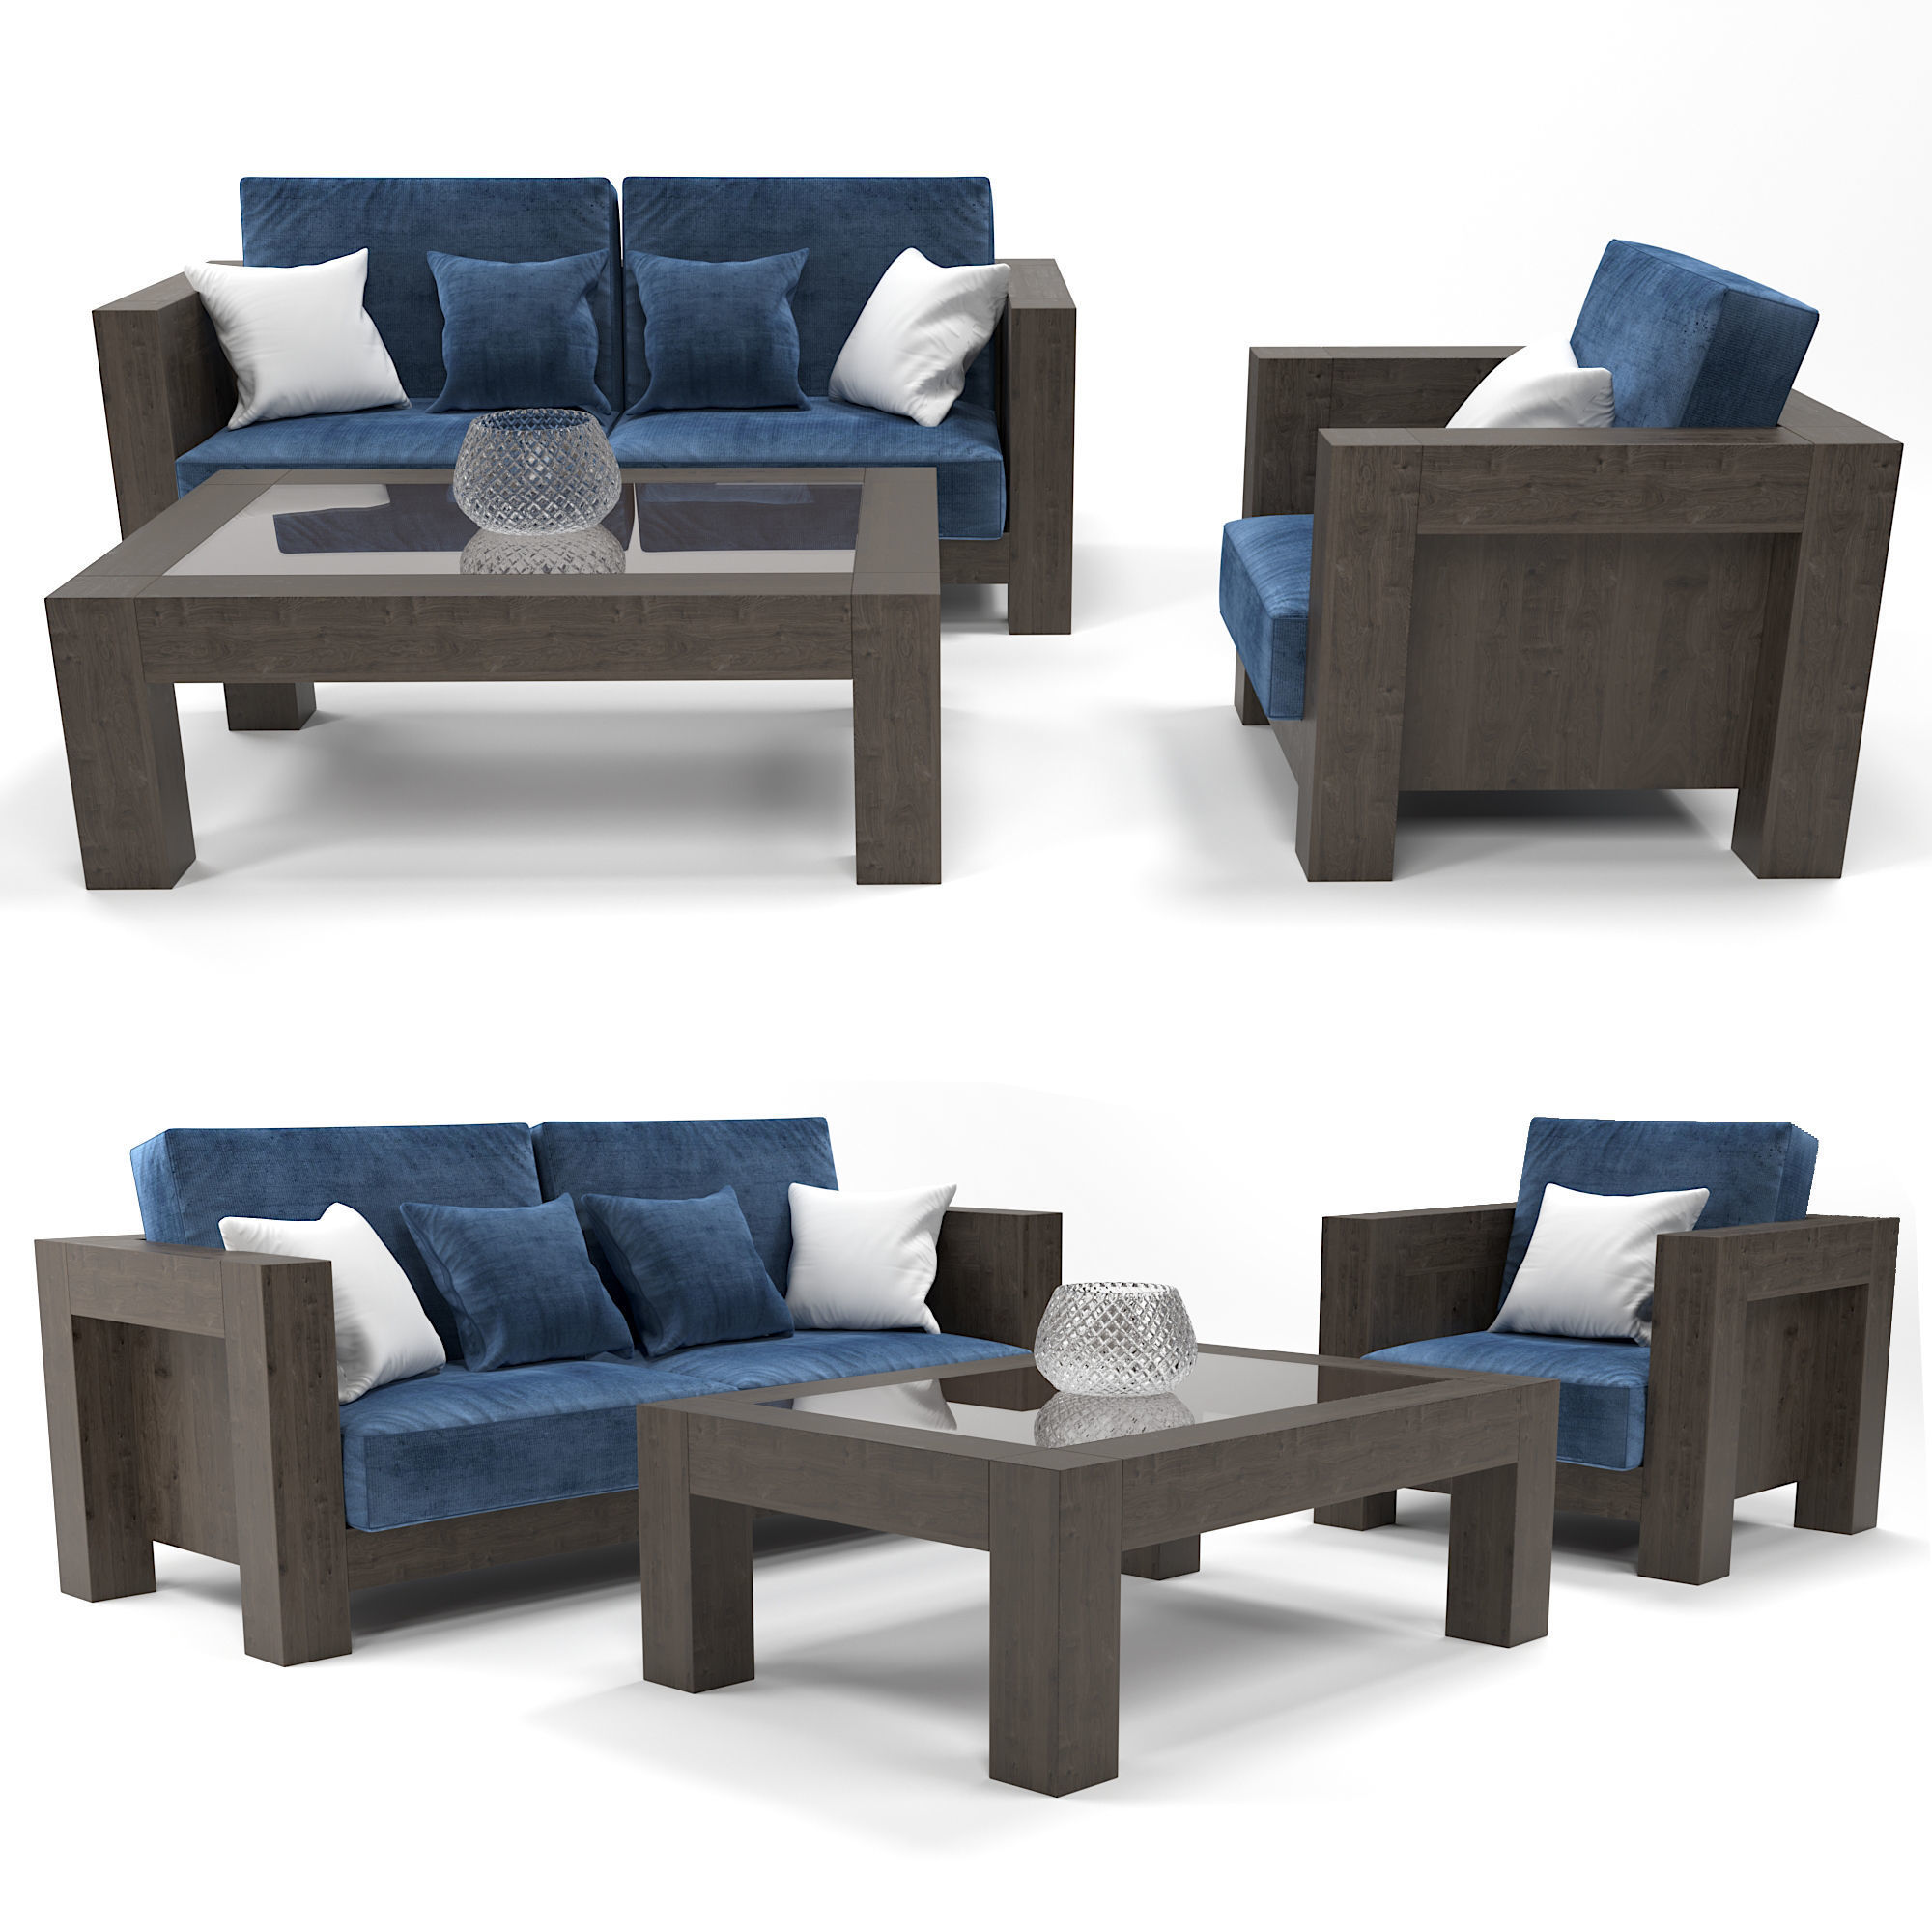 Marvelous Modern Wooden Sofa 3D Model Caraccident5 Cool Chair Designs And Ideas Caraccident5Info